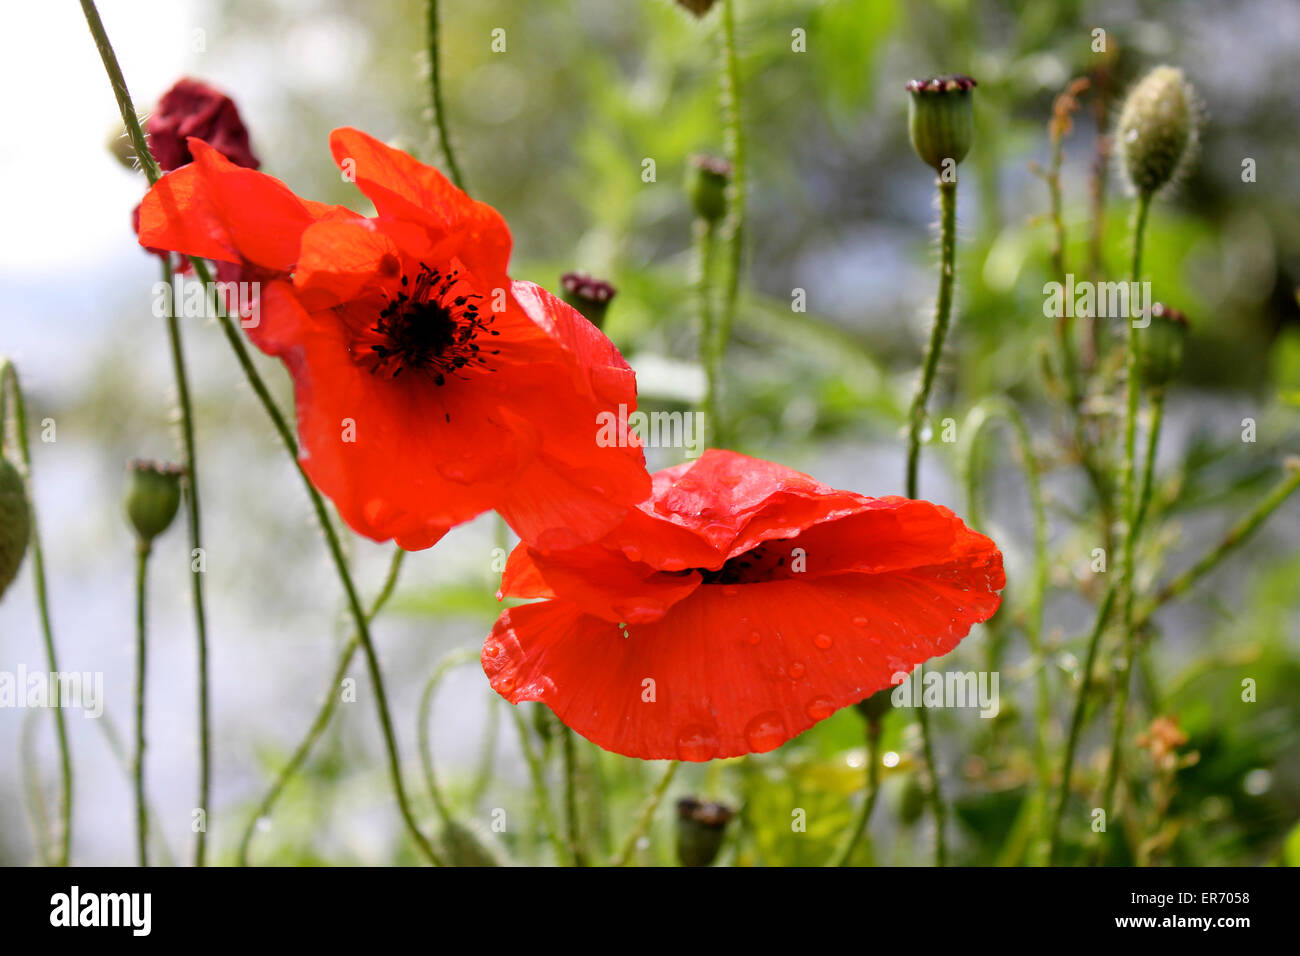 Red Poppy Flower After Rain Stock Photos Red Poppy Flower After